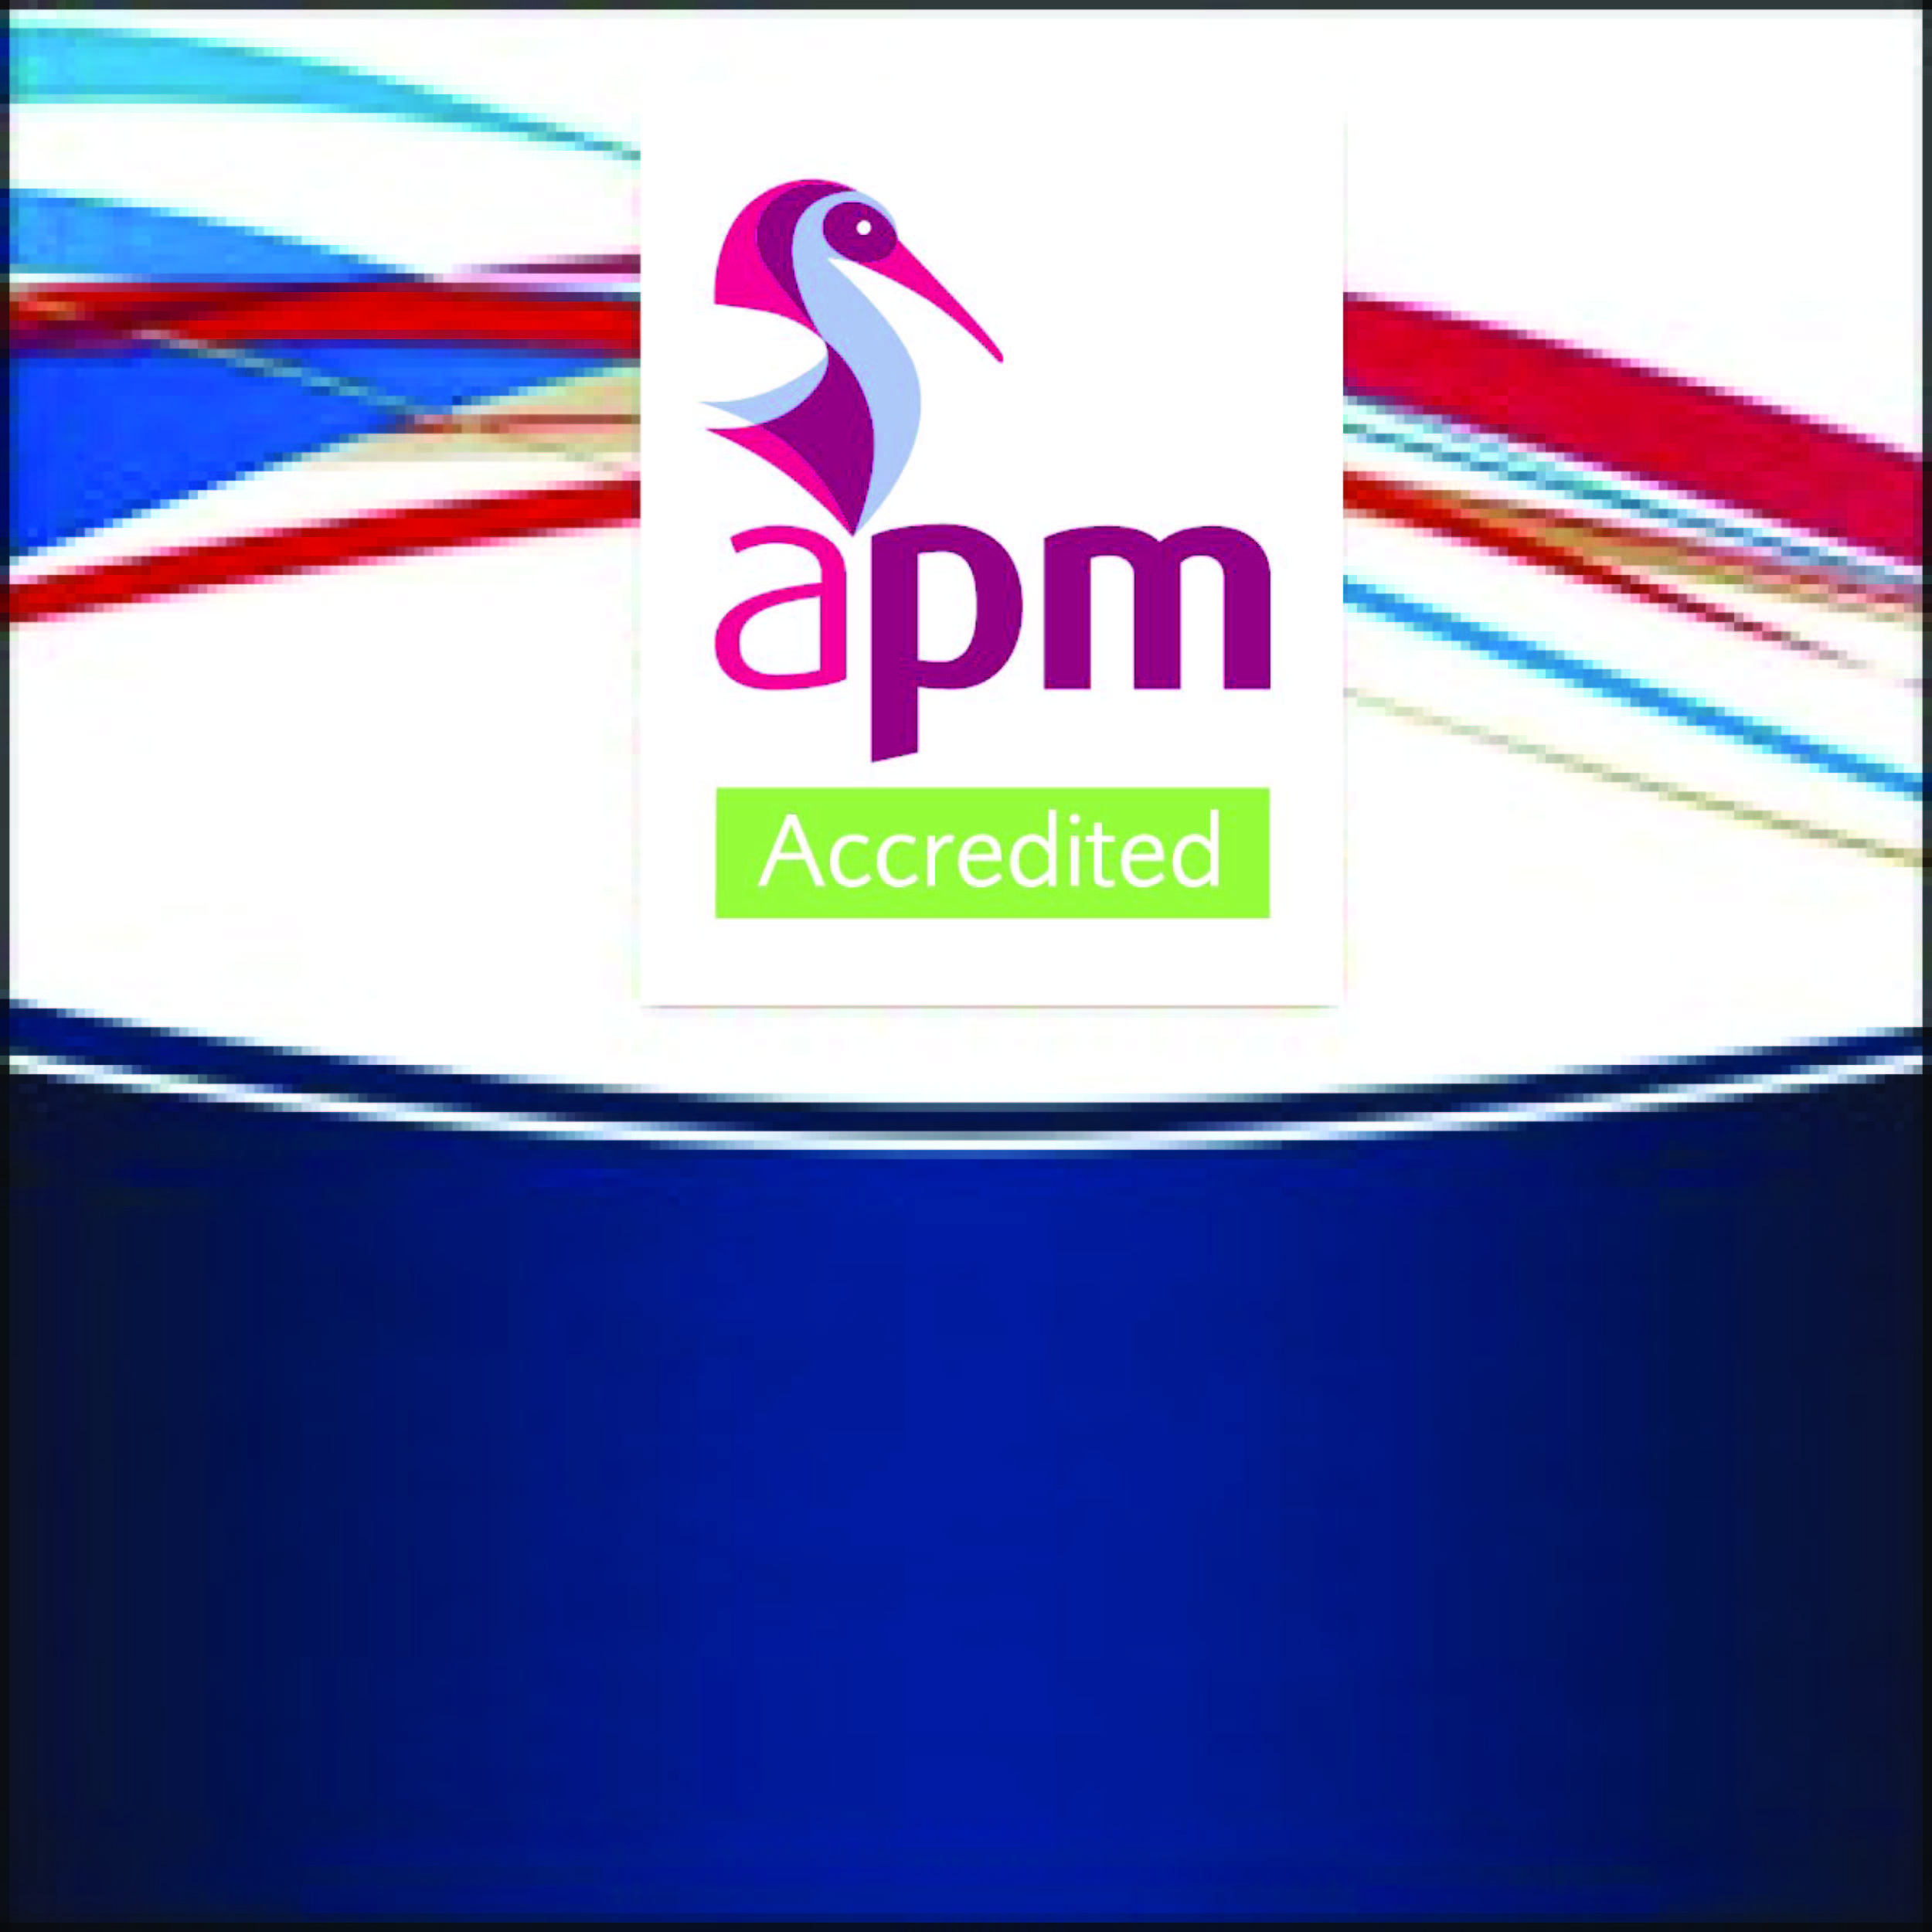 Association for project management apm introductory certificate yelopaper Gallery